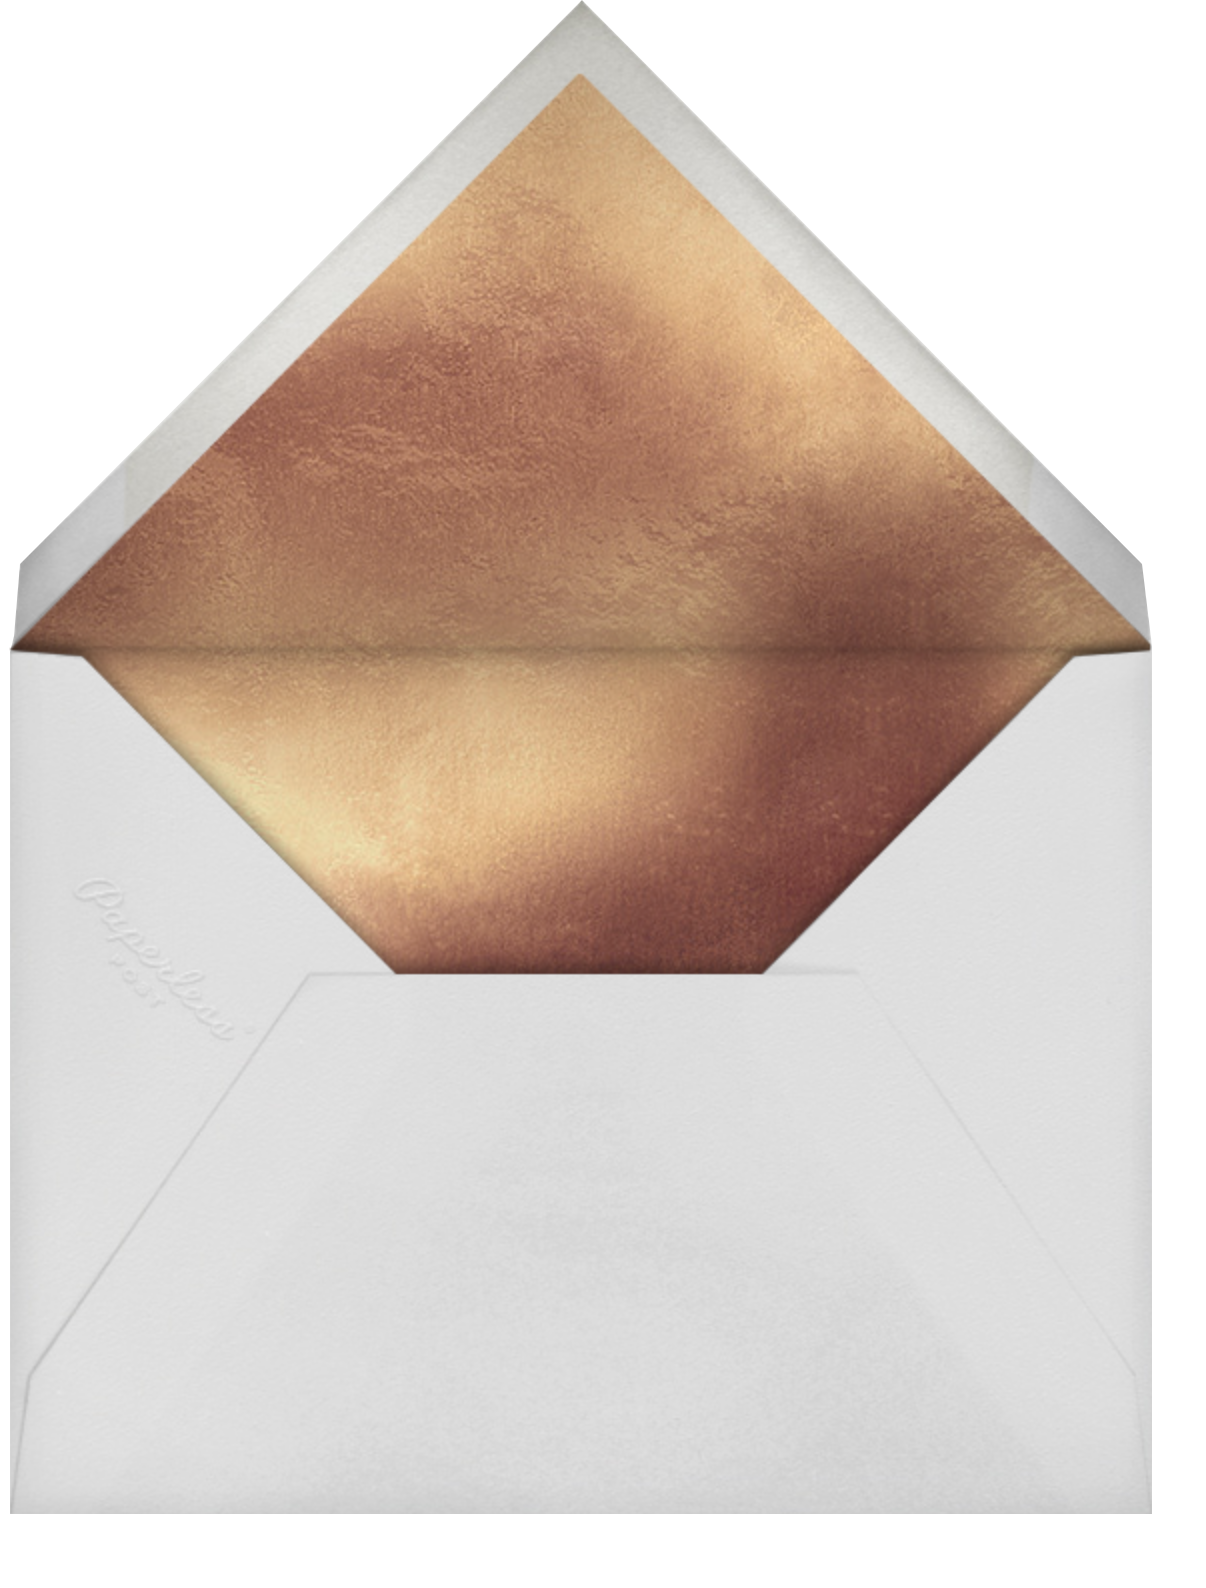 My Anchor - Rifle Paper Co. - Valentine's Day - envelope back